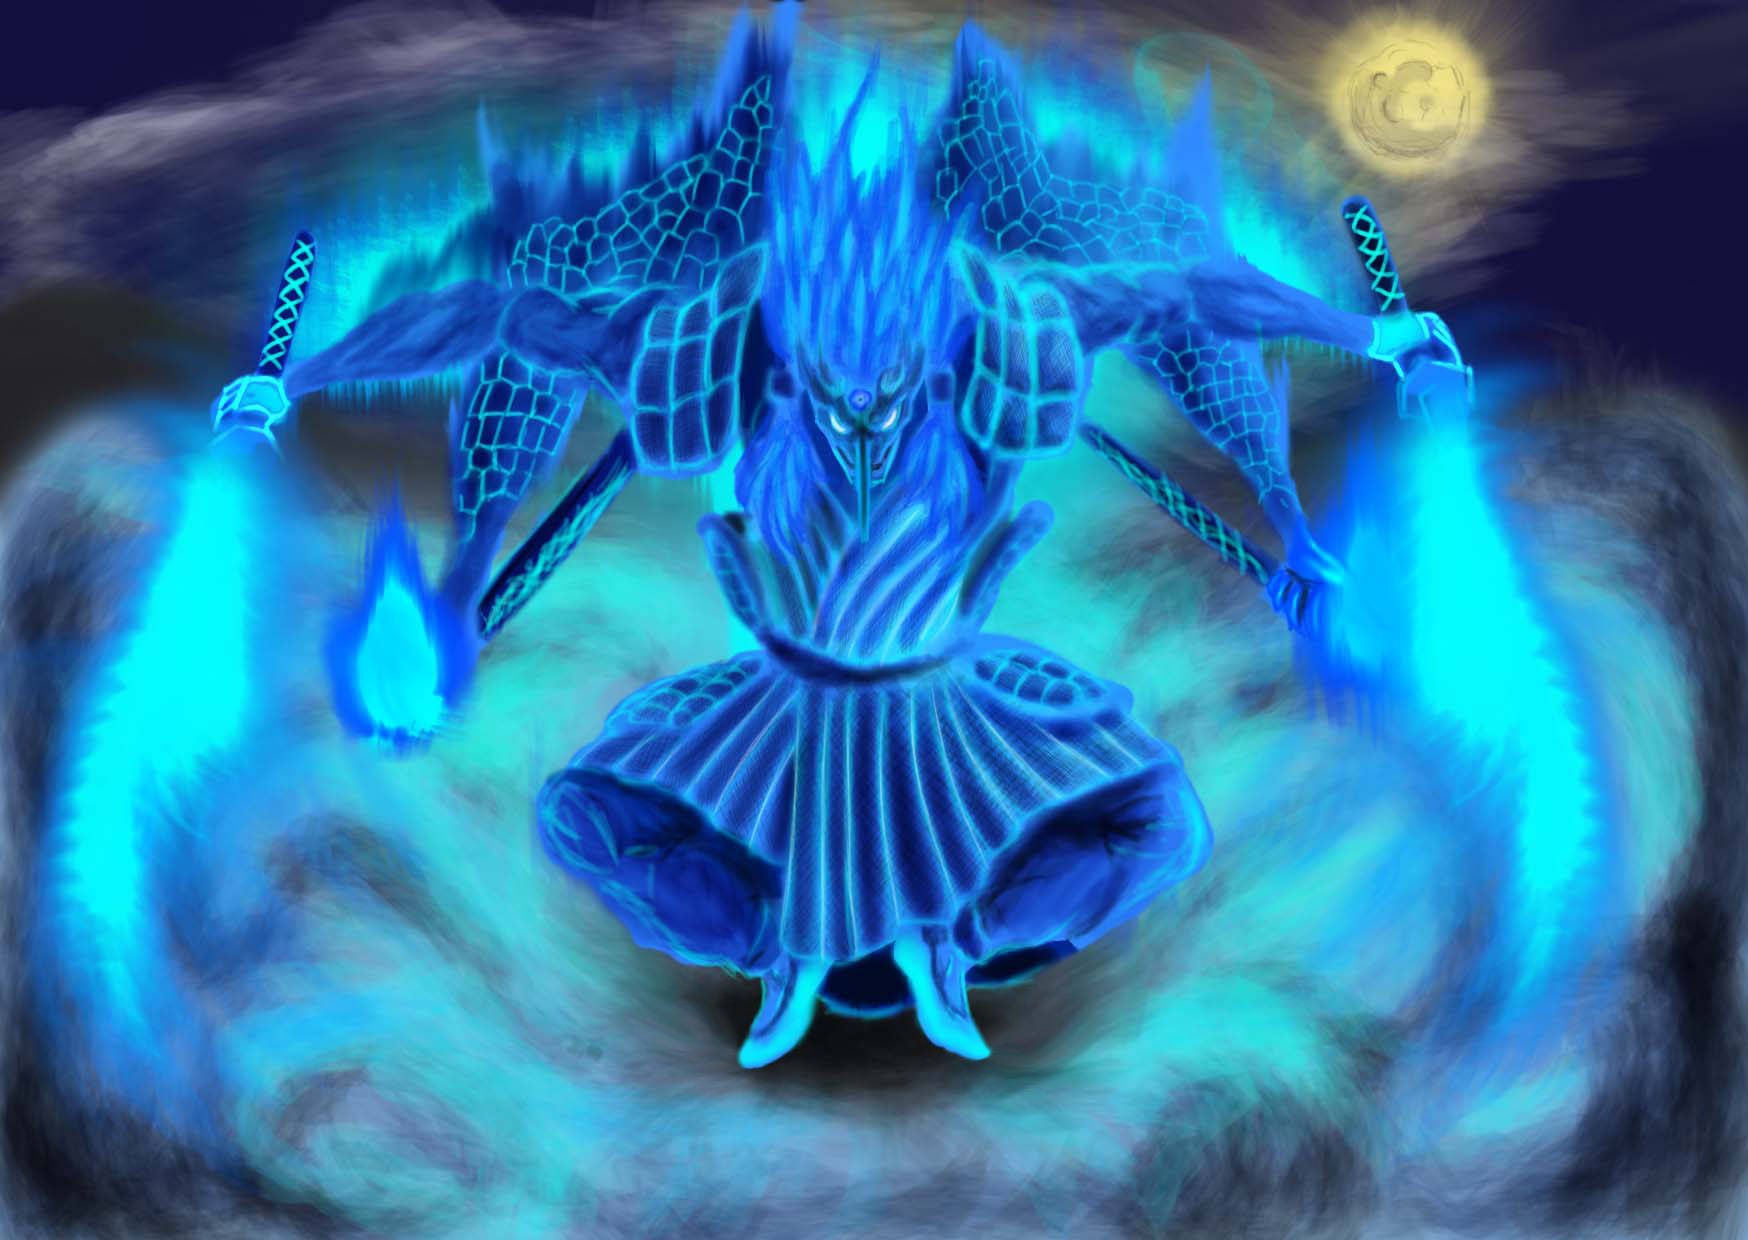 Uchiha Madara Perfect Susanoo by SUSANOOMADARA on DeviantArt